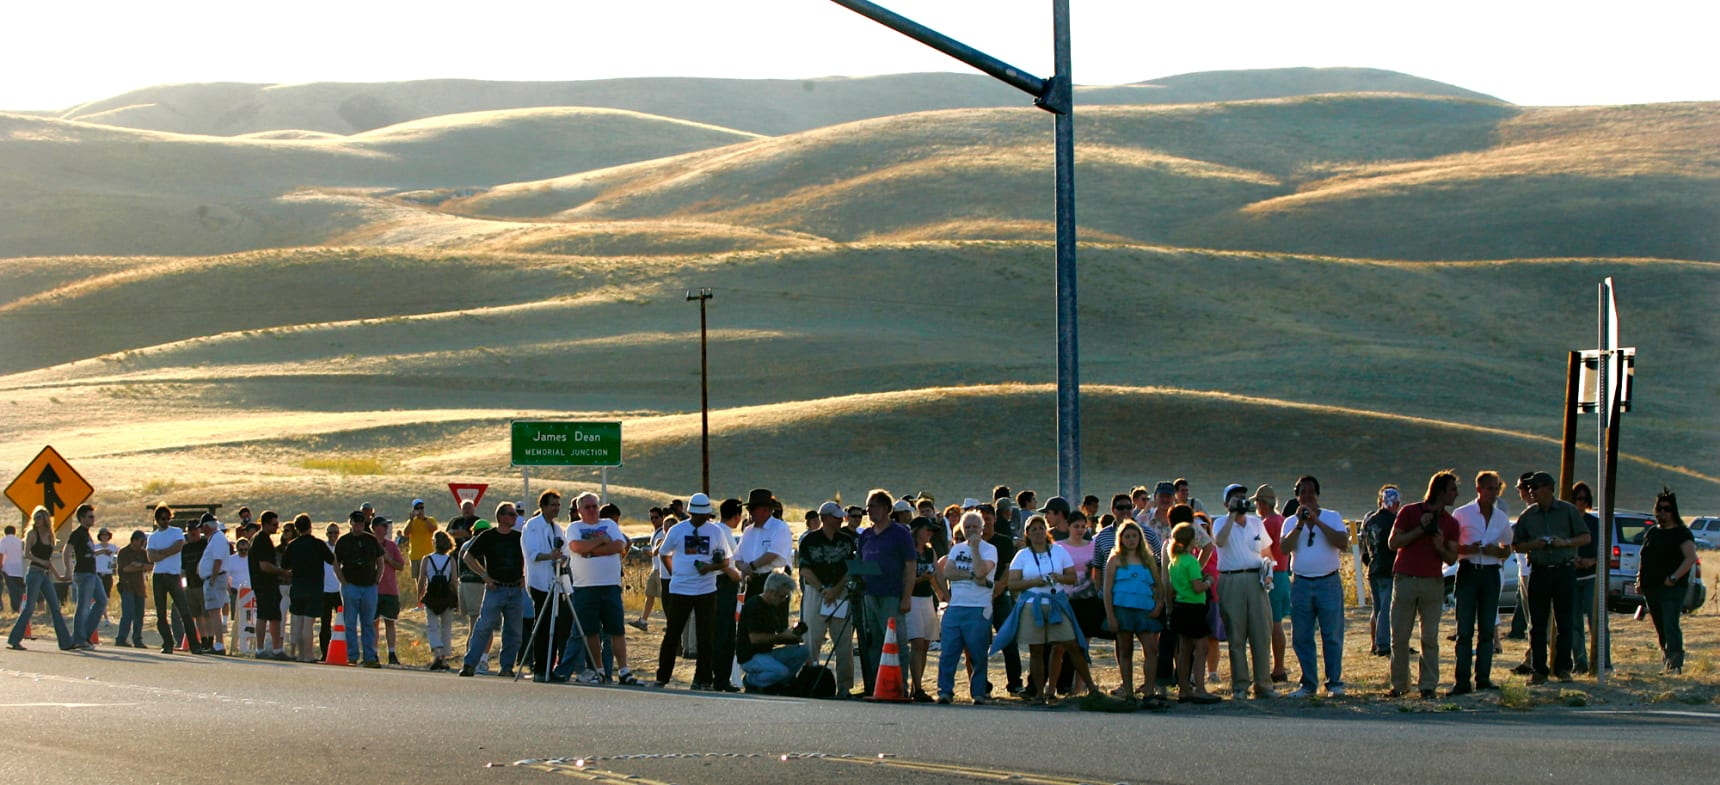 Fans gather at the crash site where James Dean died at Intersection 41 and 46 H.